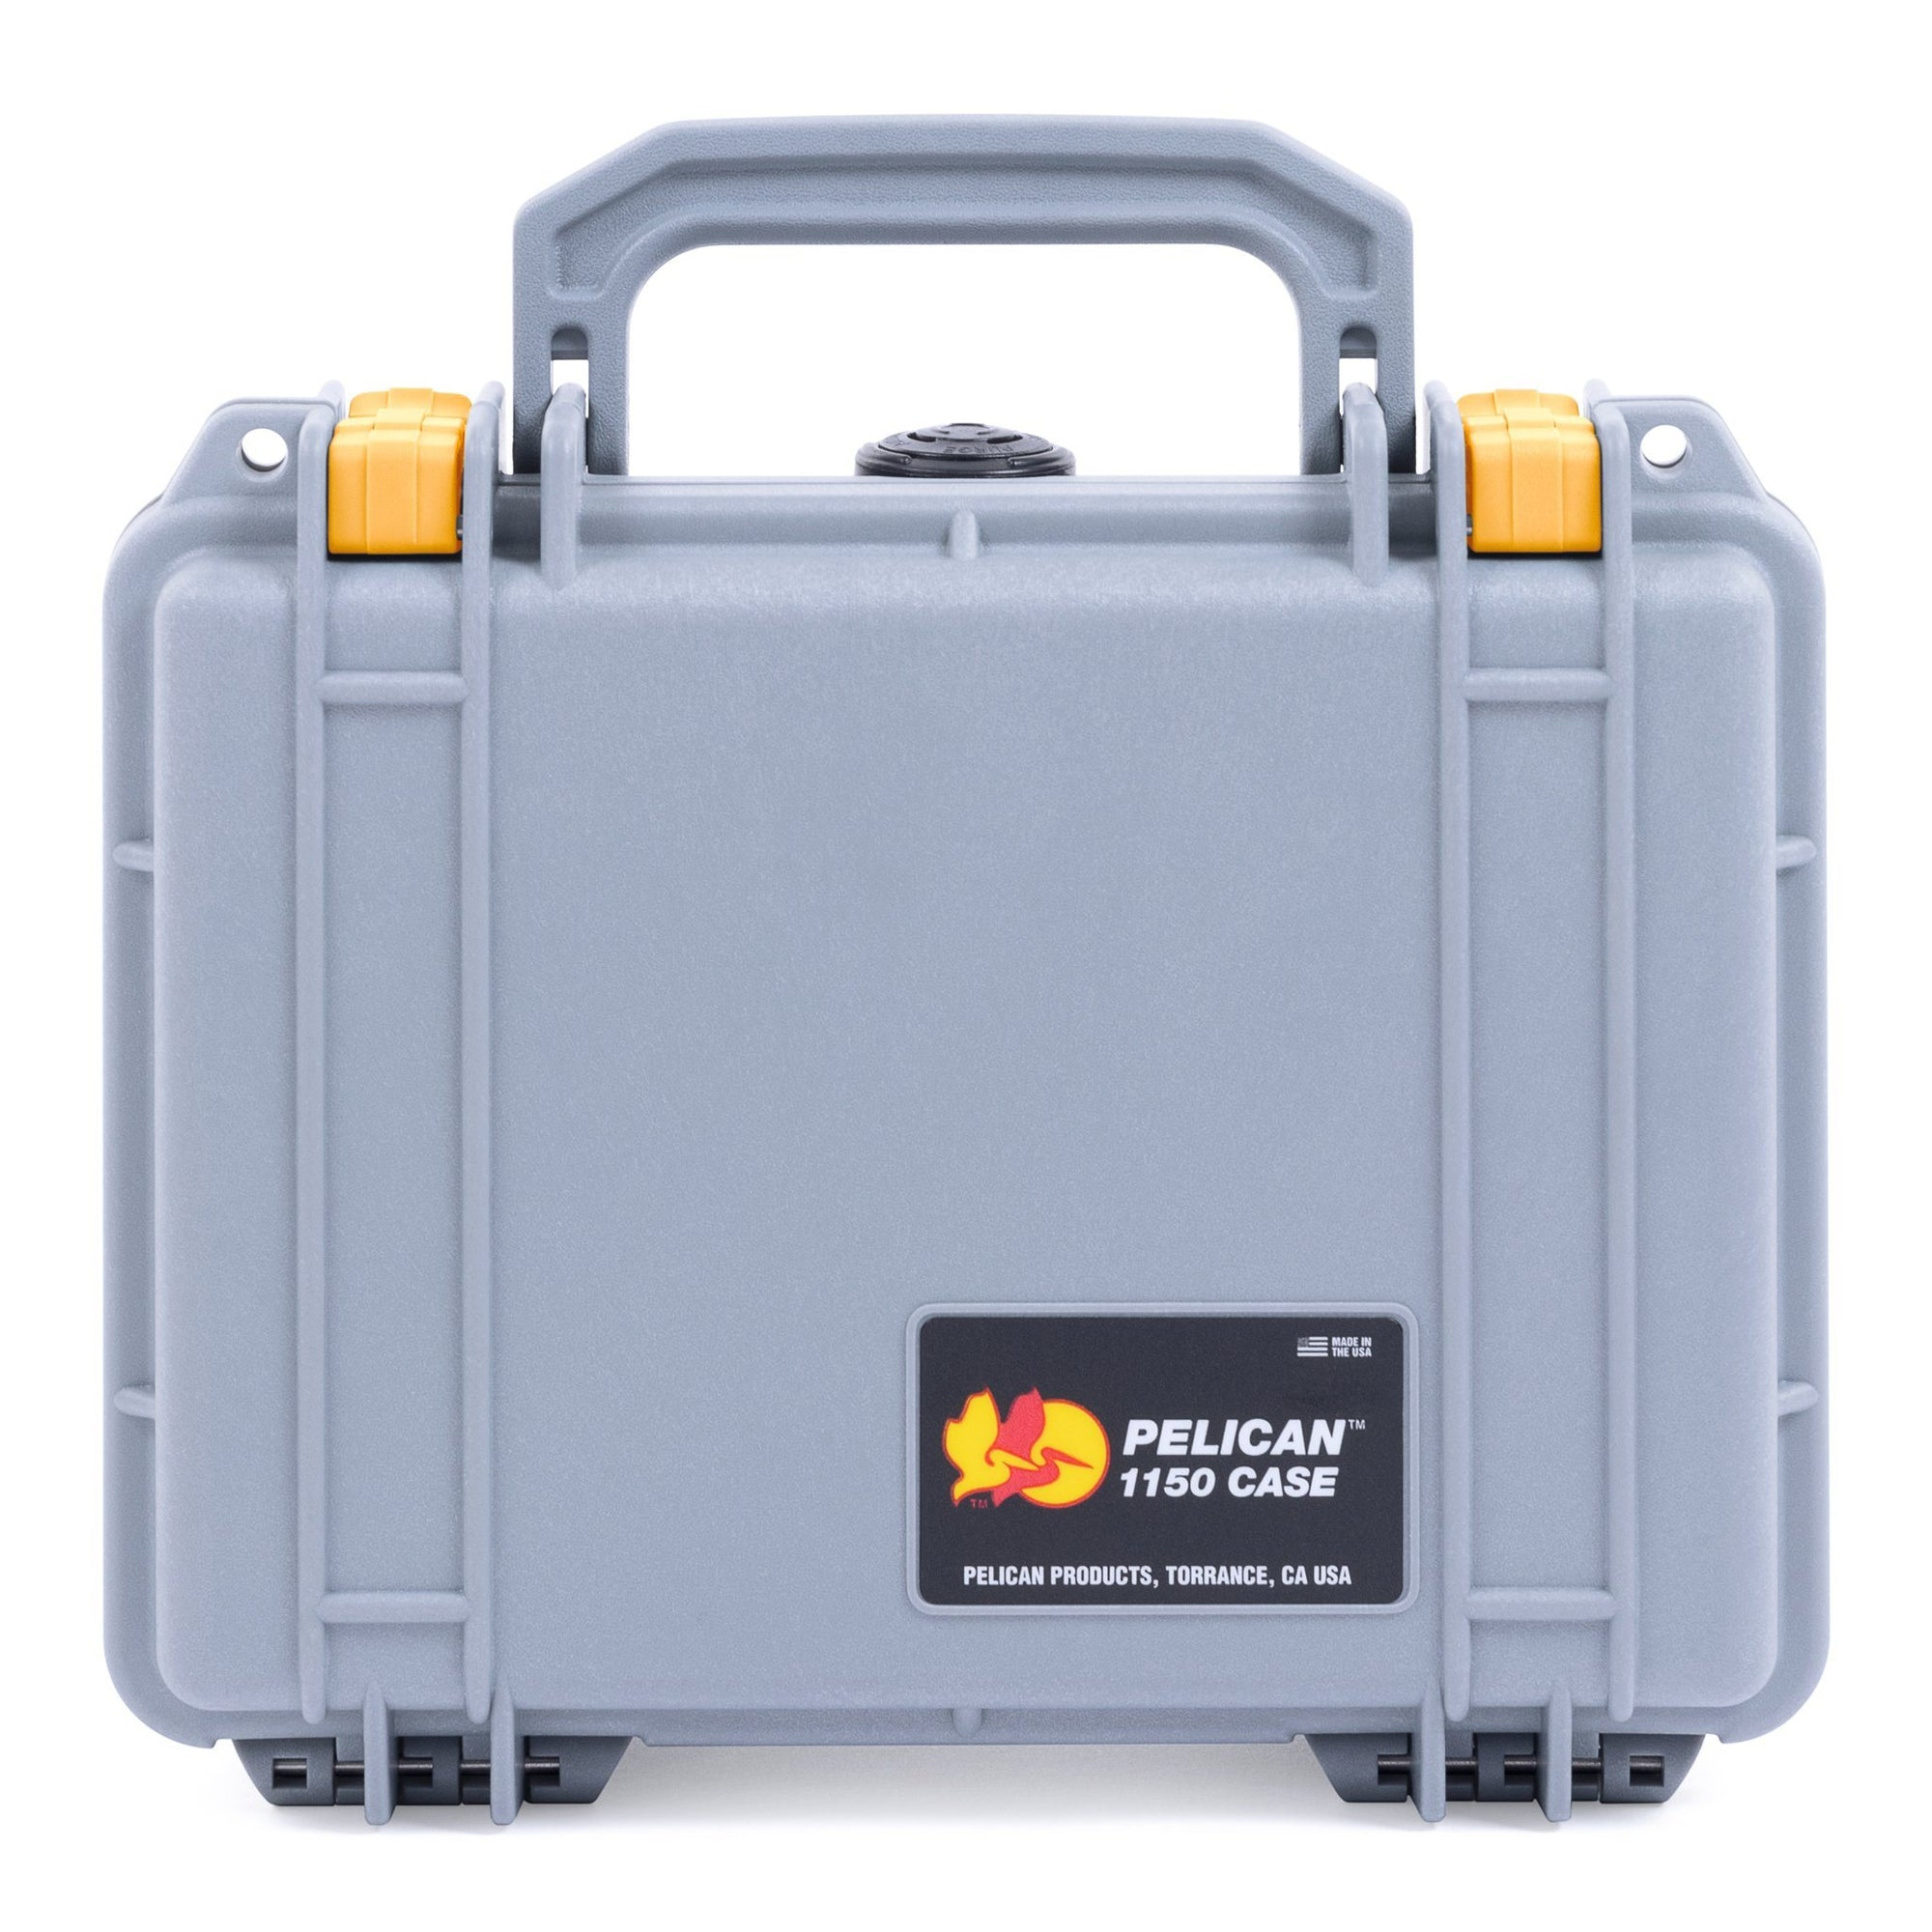 Pelican 1150 Case, Silver with Yellow Latches - Pelican Color Case